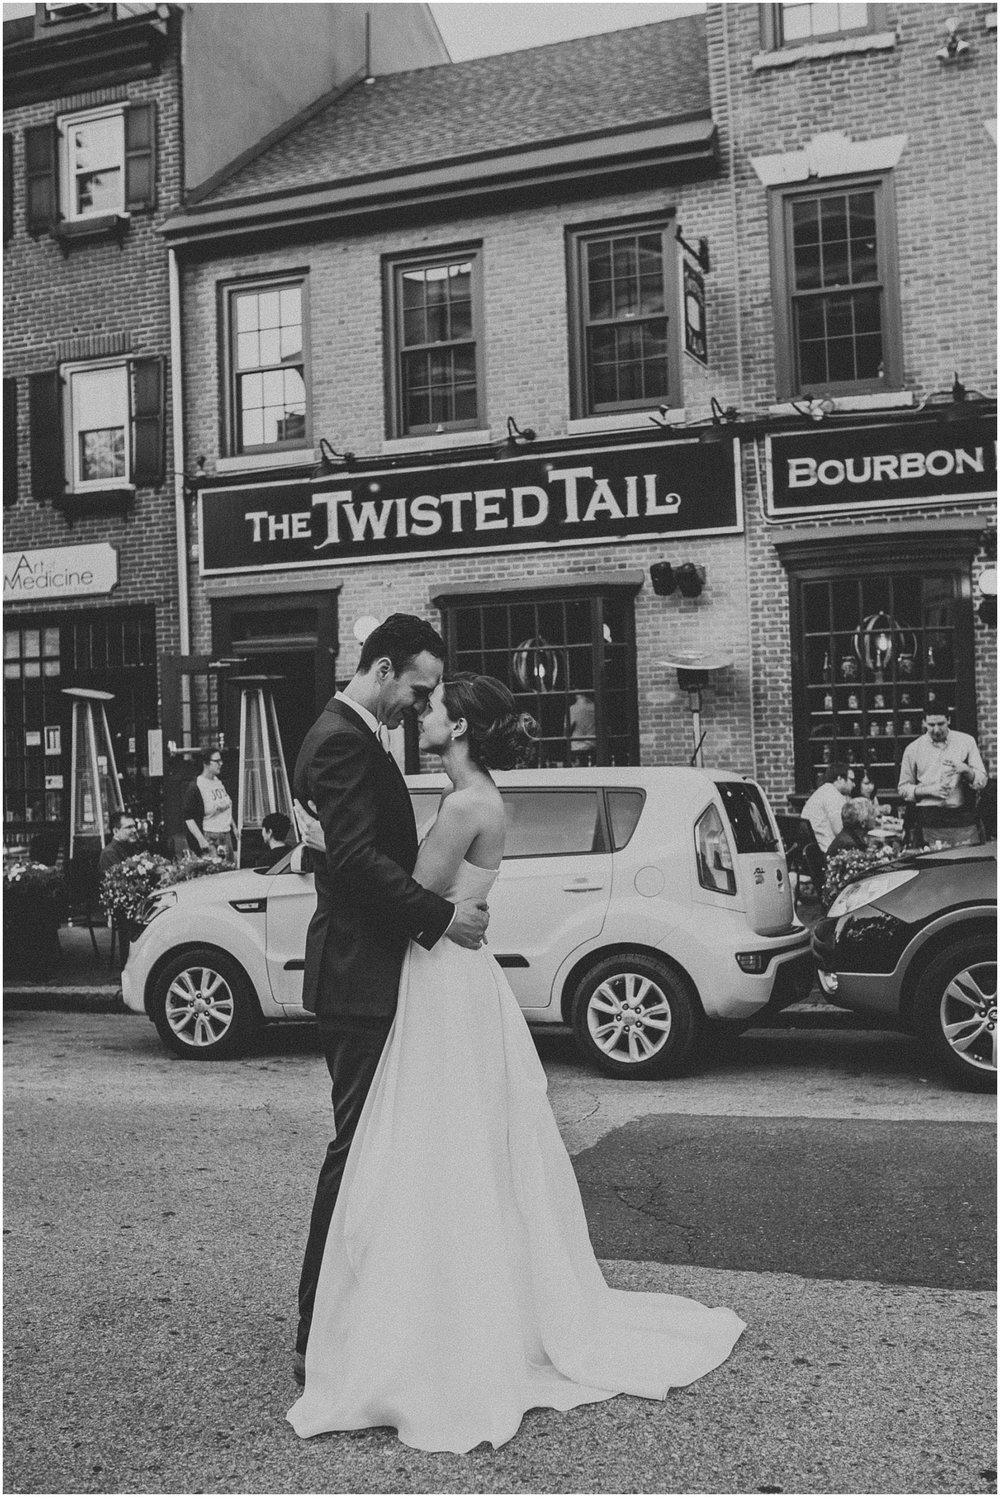 Bride and Groom wedding reception at Twisted Tail restaurant in Philadelphia Pennsylvania